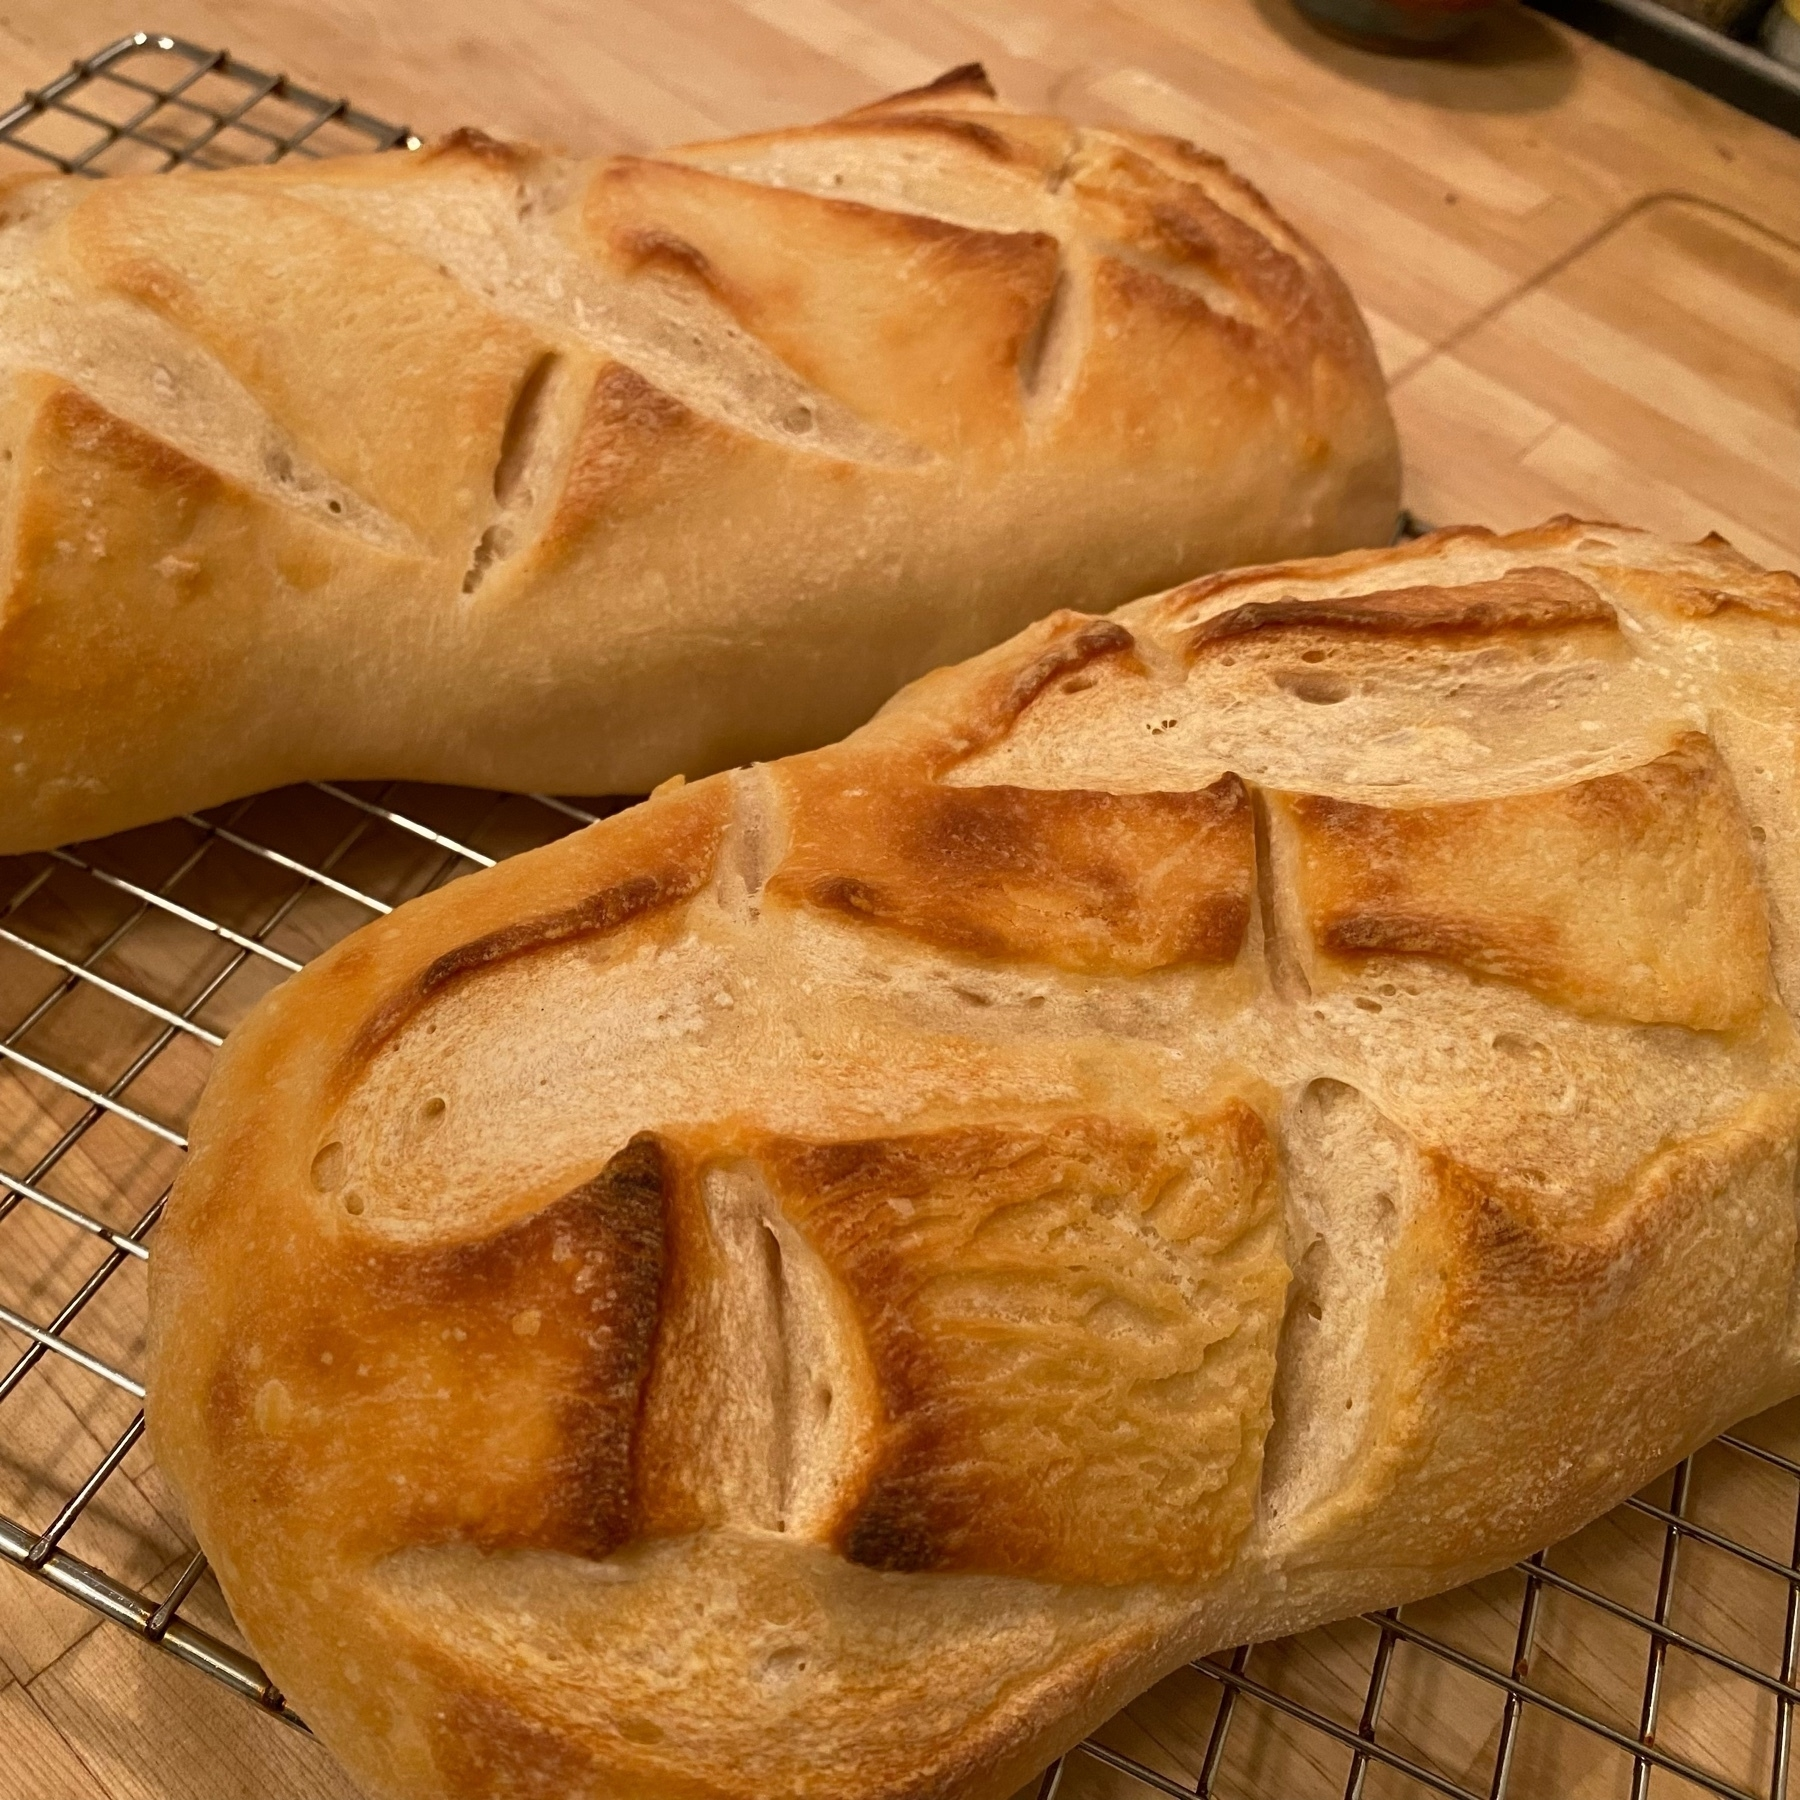 picture of two loa es of freshly baked bread with criss-cross slash patterns on top